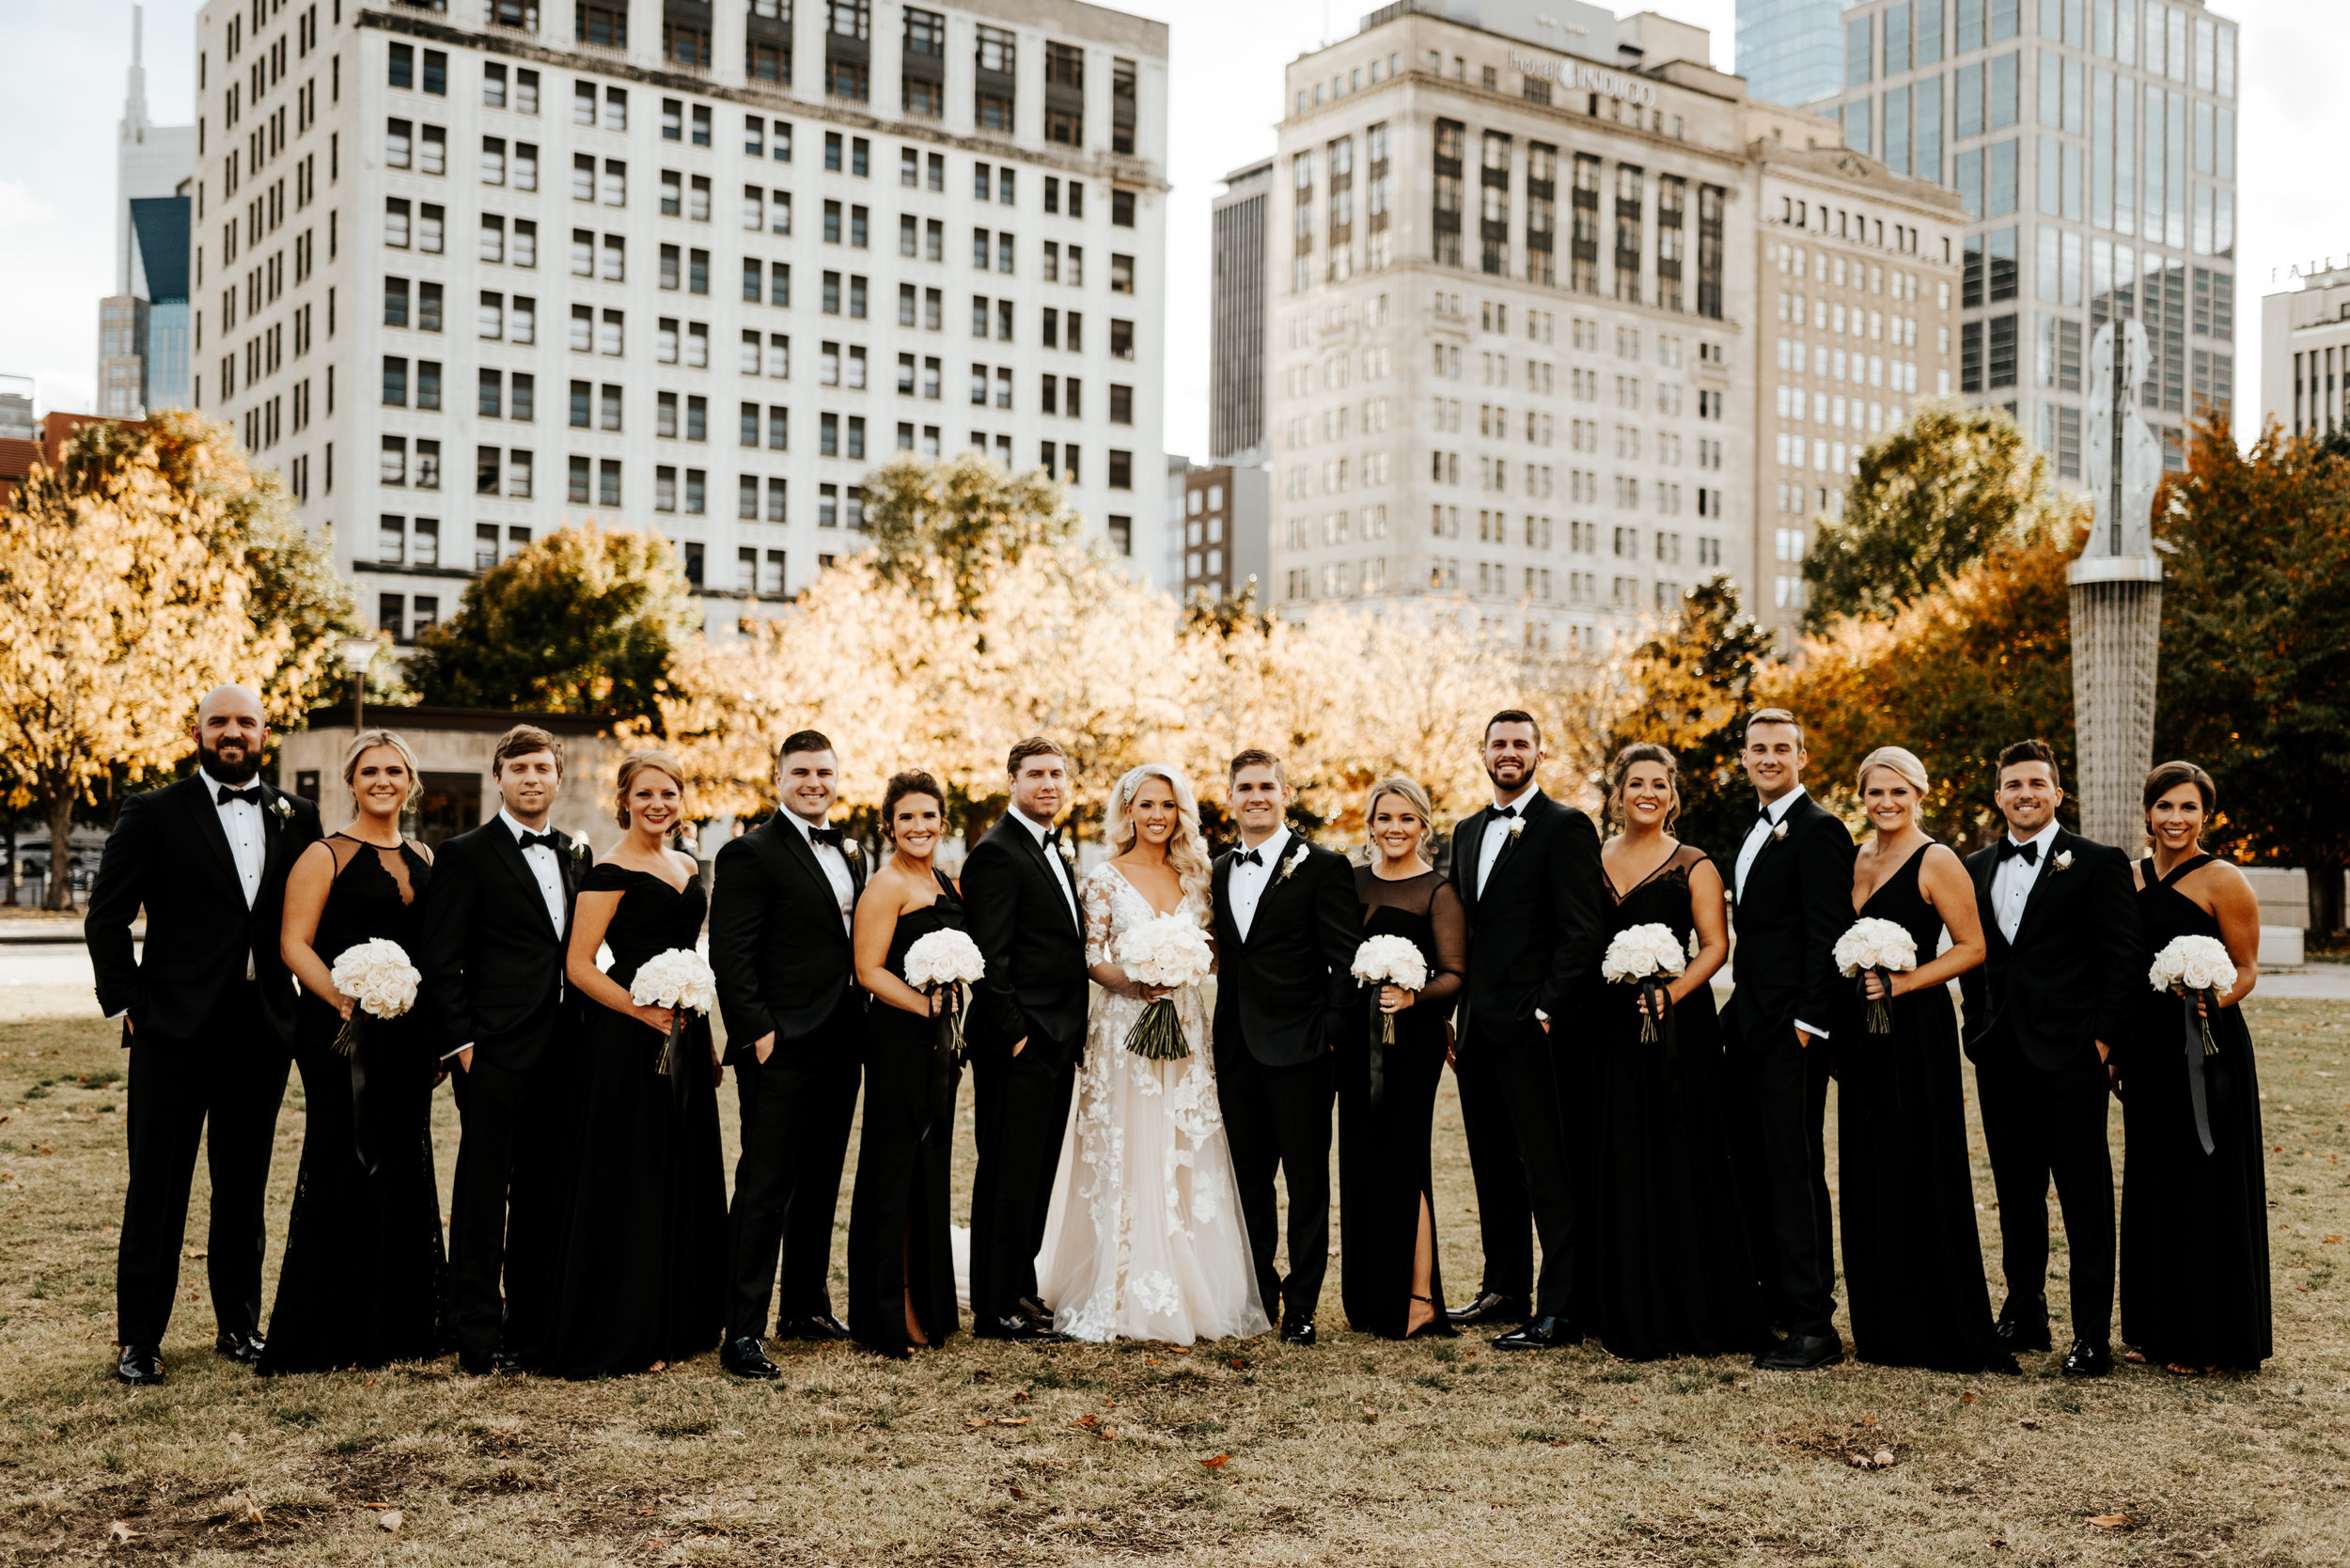 photo courtesy of  Cannon Weddings